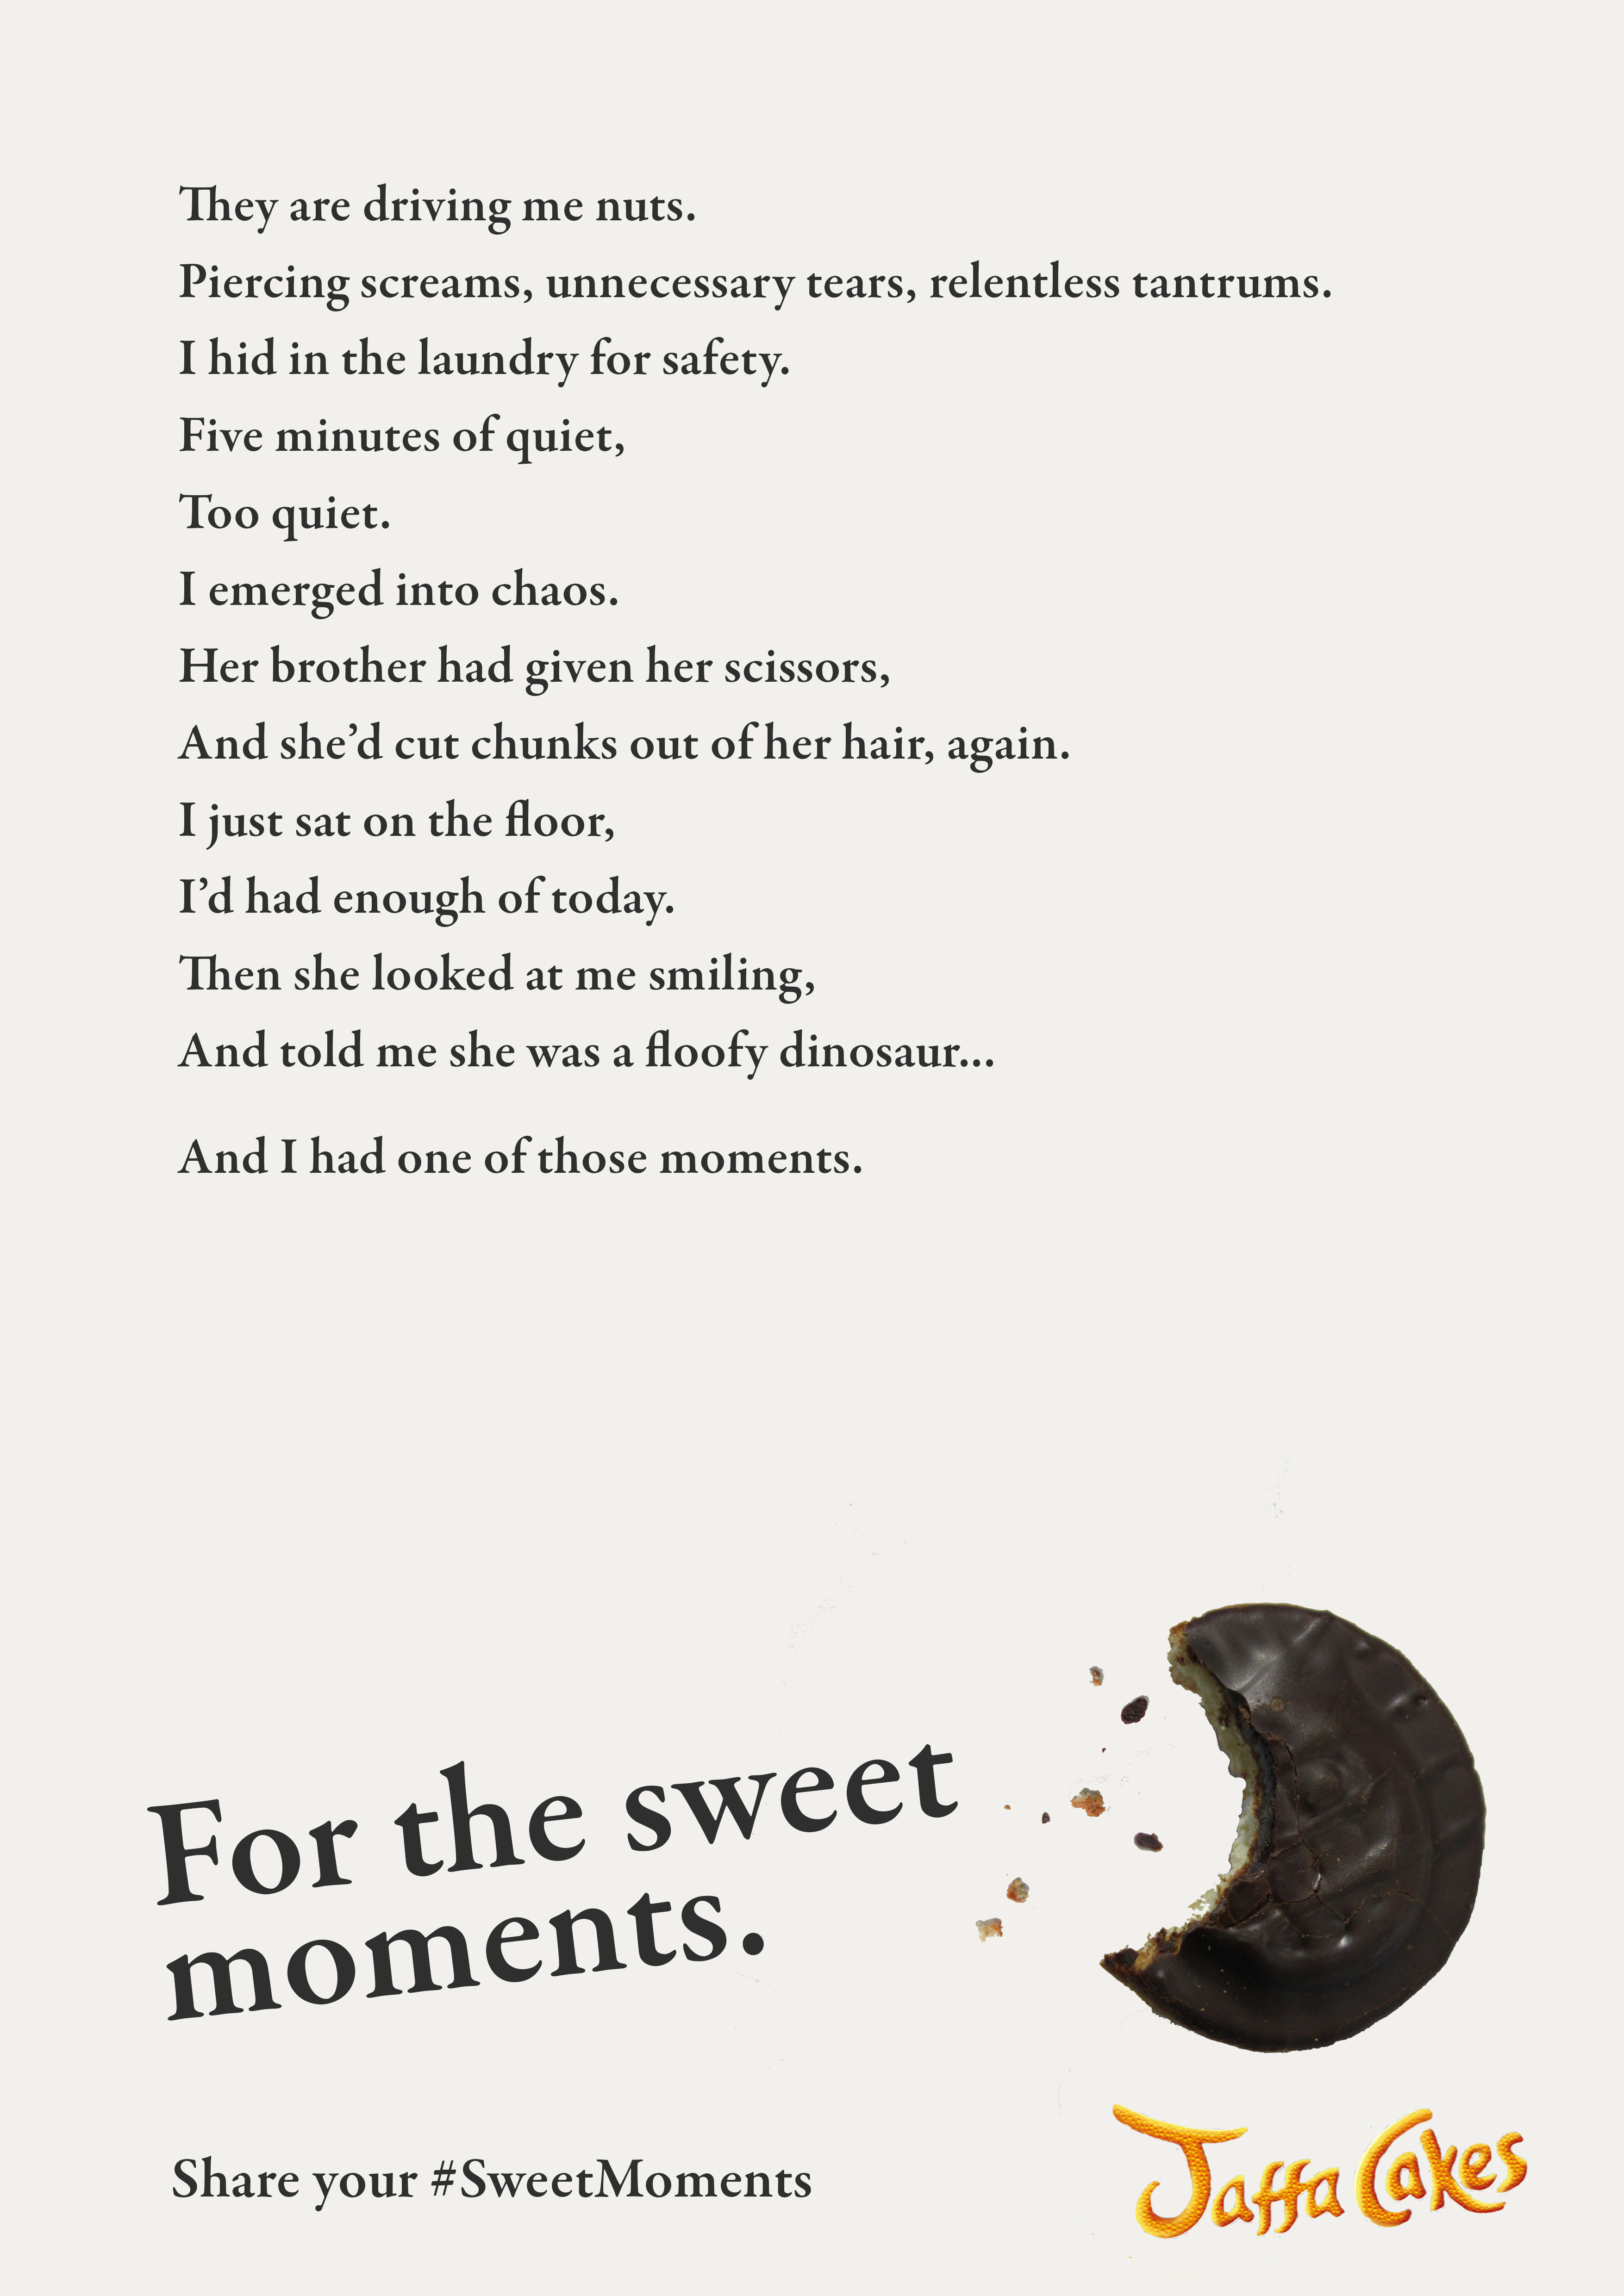 Jaffa Cakes campaign by Jemima Proudfoot